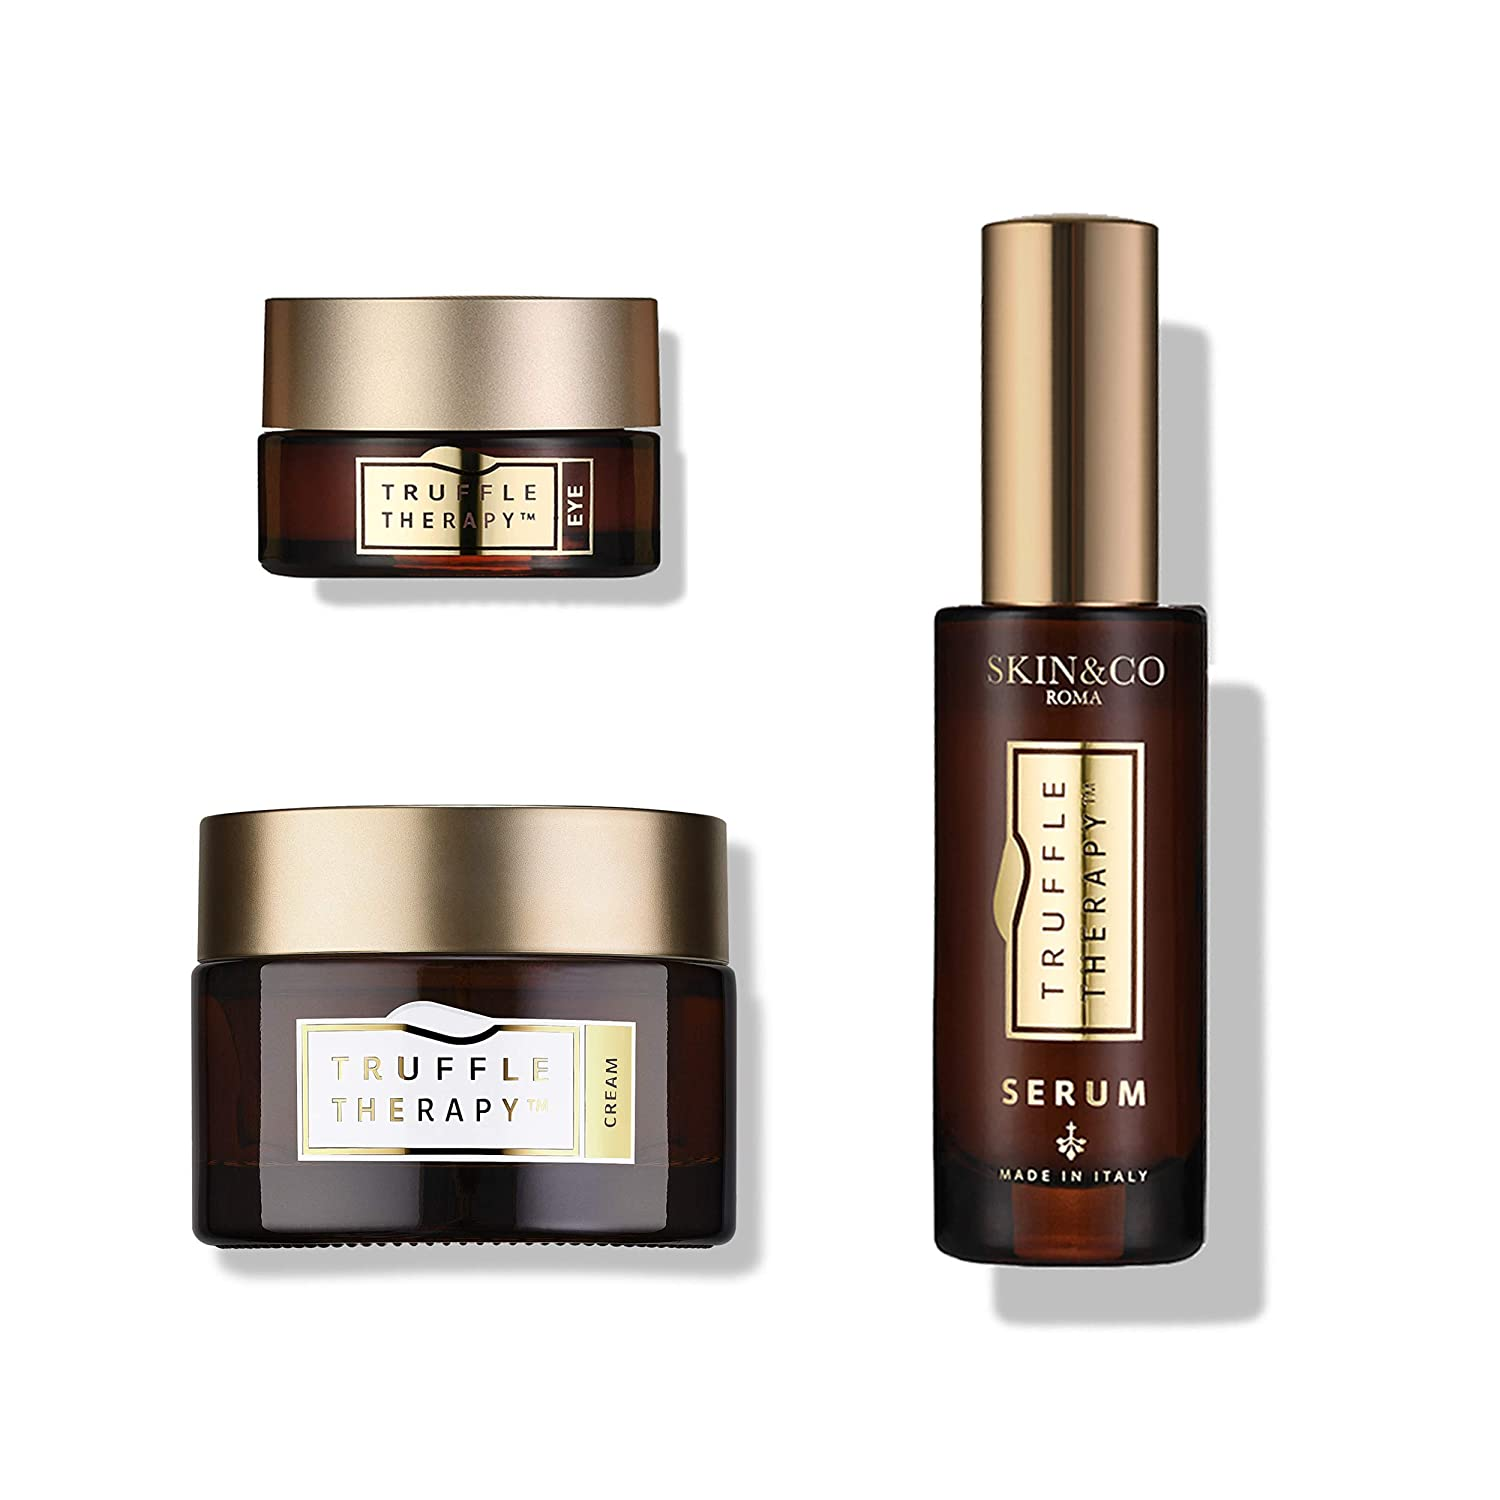 SKINCO OFFer Roma Truffle Therapy True Glow NEW before selling Skincare 3.2 Oz Set Fl